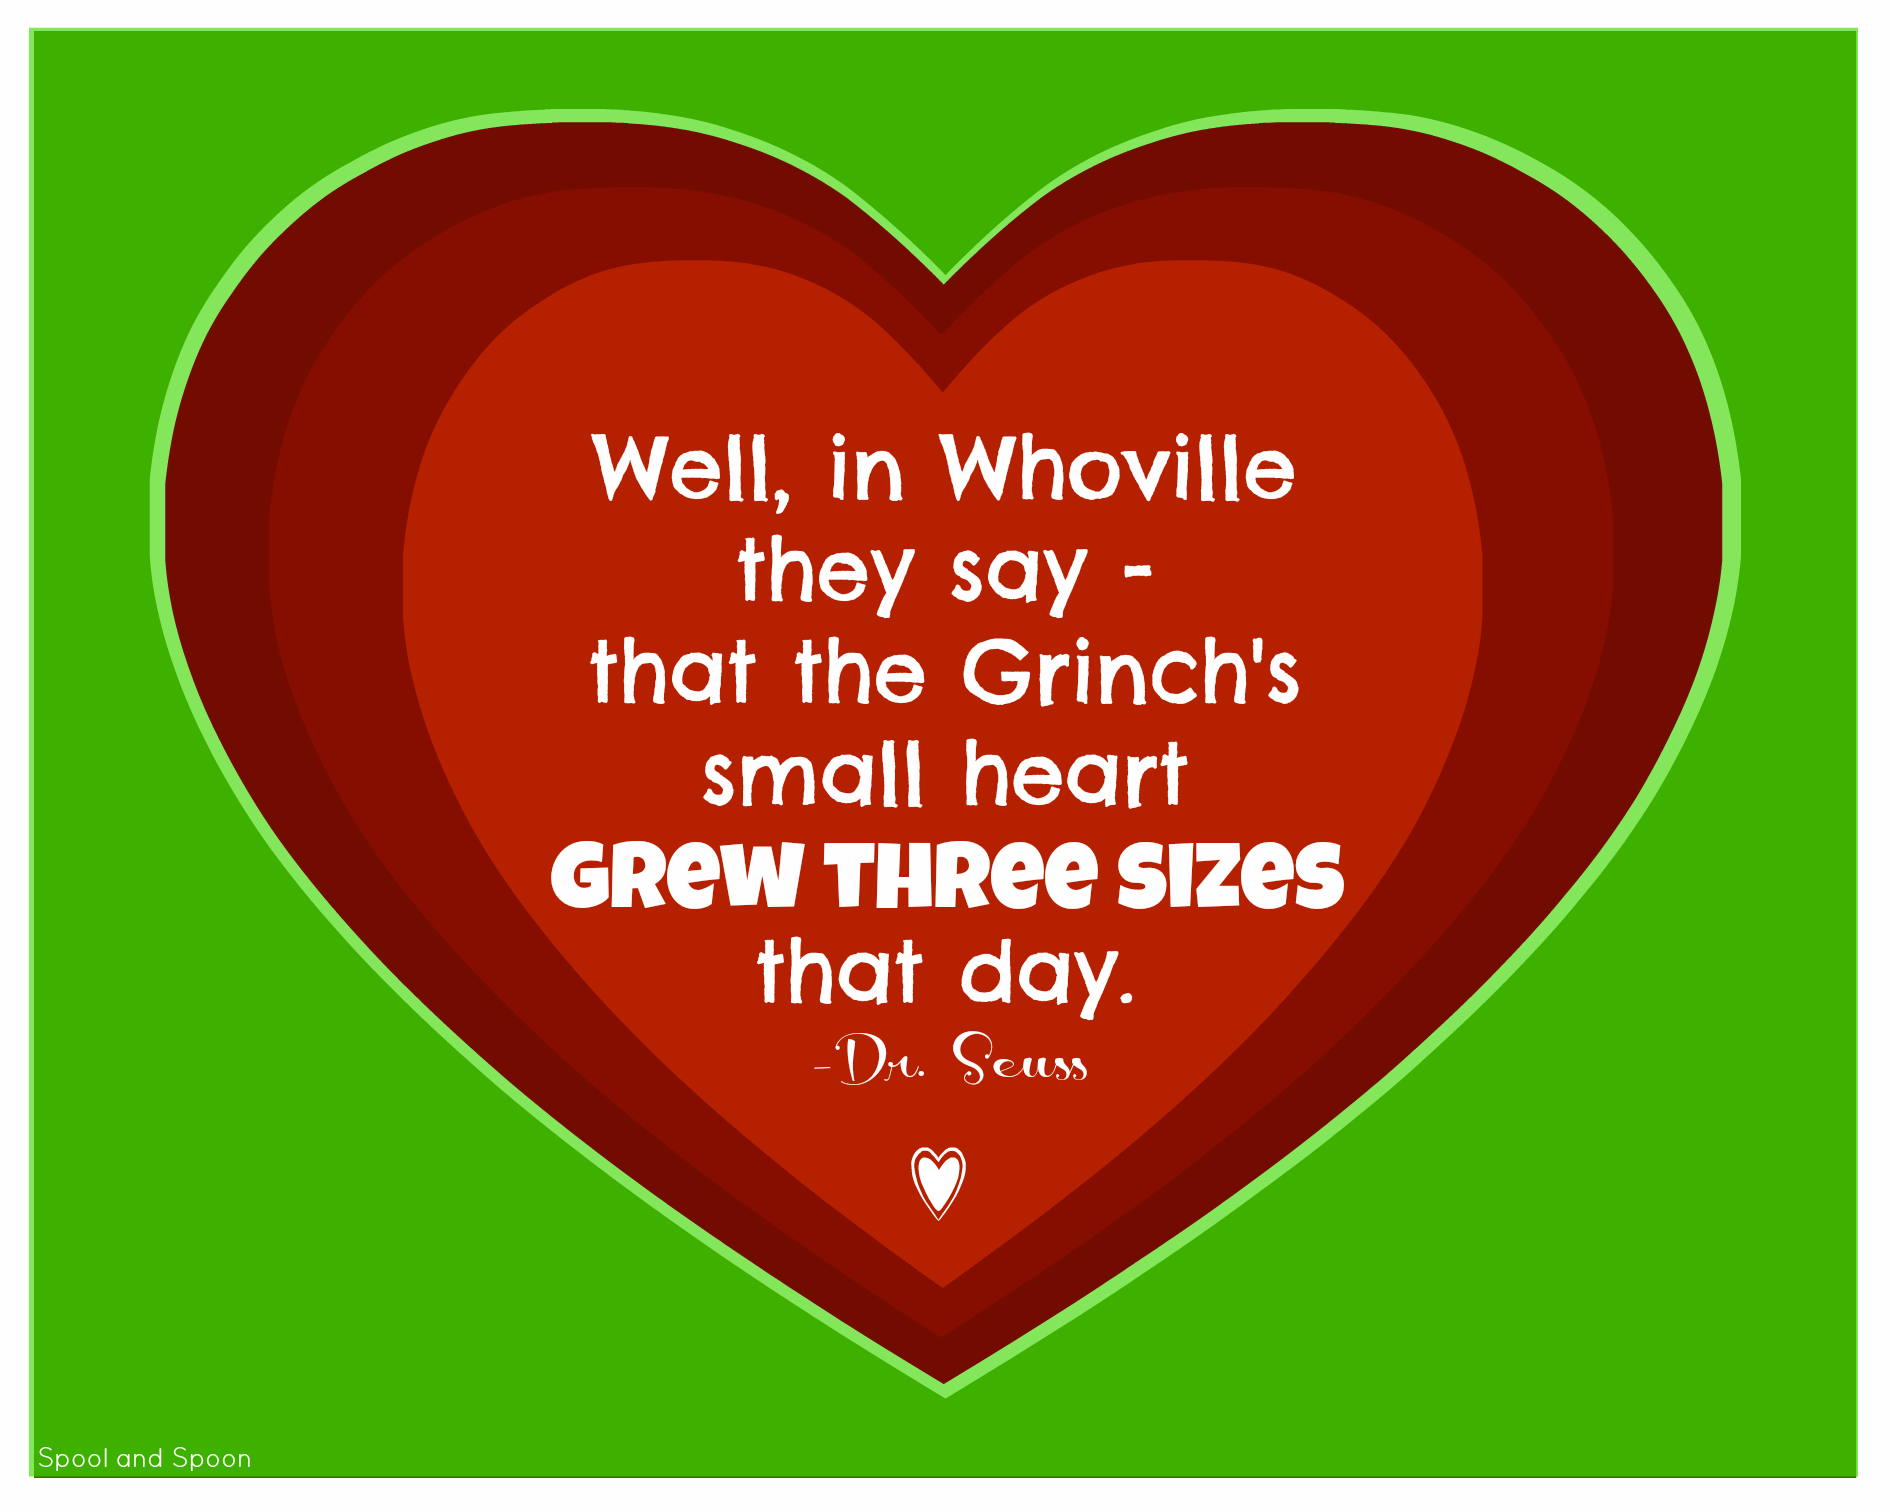 Grinch Quotes Gorgeous Grinchheart  Google Drive  Grinch Ideas  Pinterest  Google